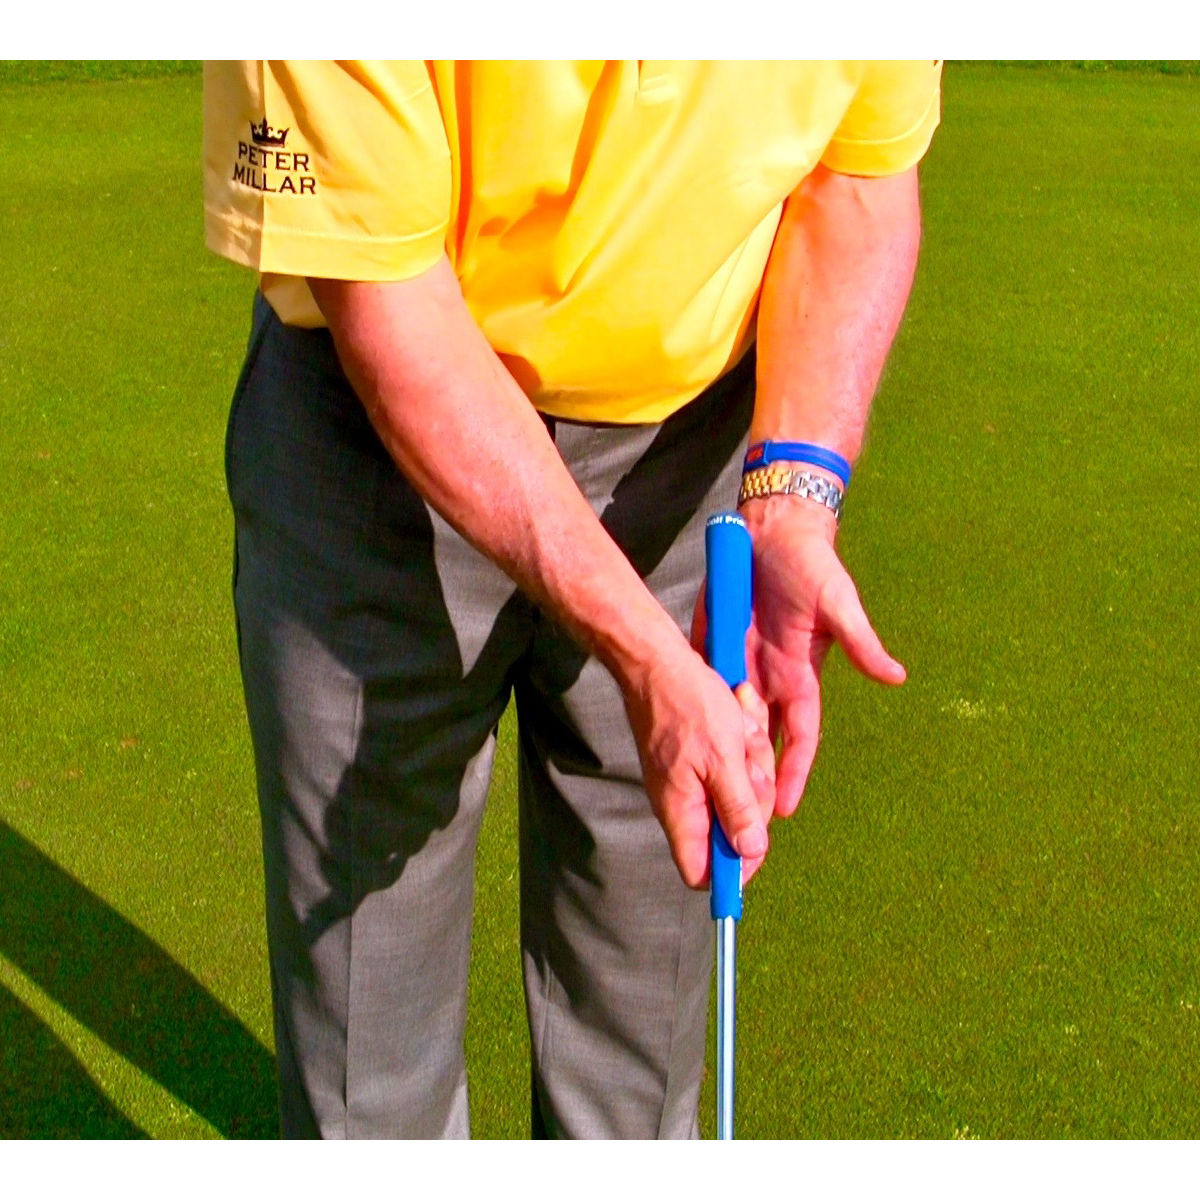 EyeLine Golf - Lifeline Putting Grip - Putterfingers.com